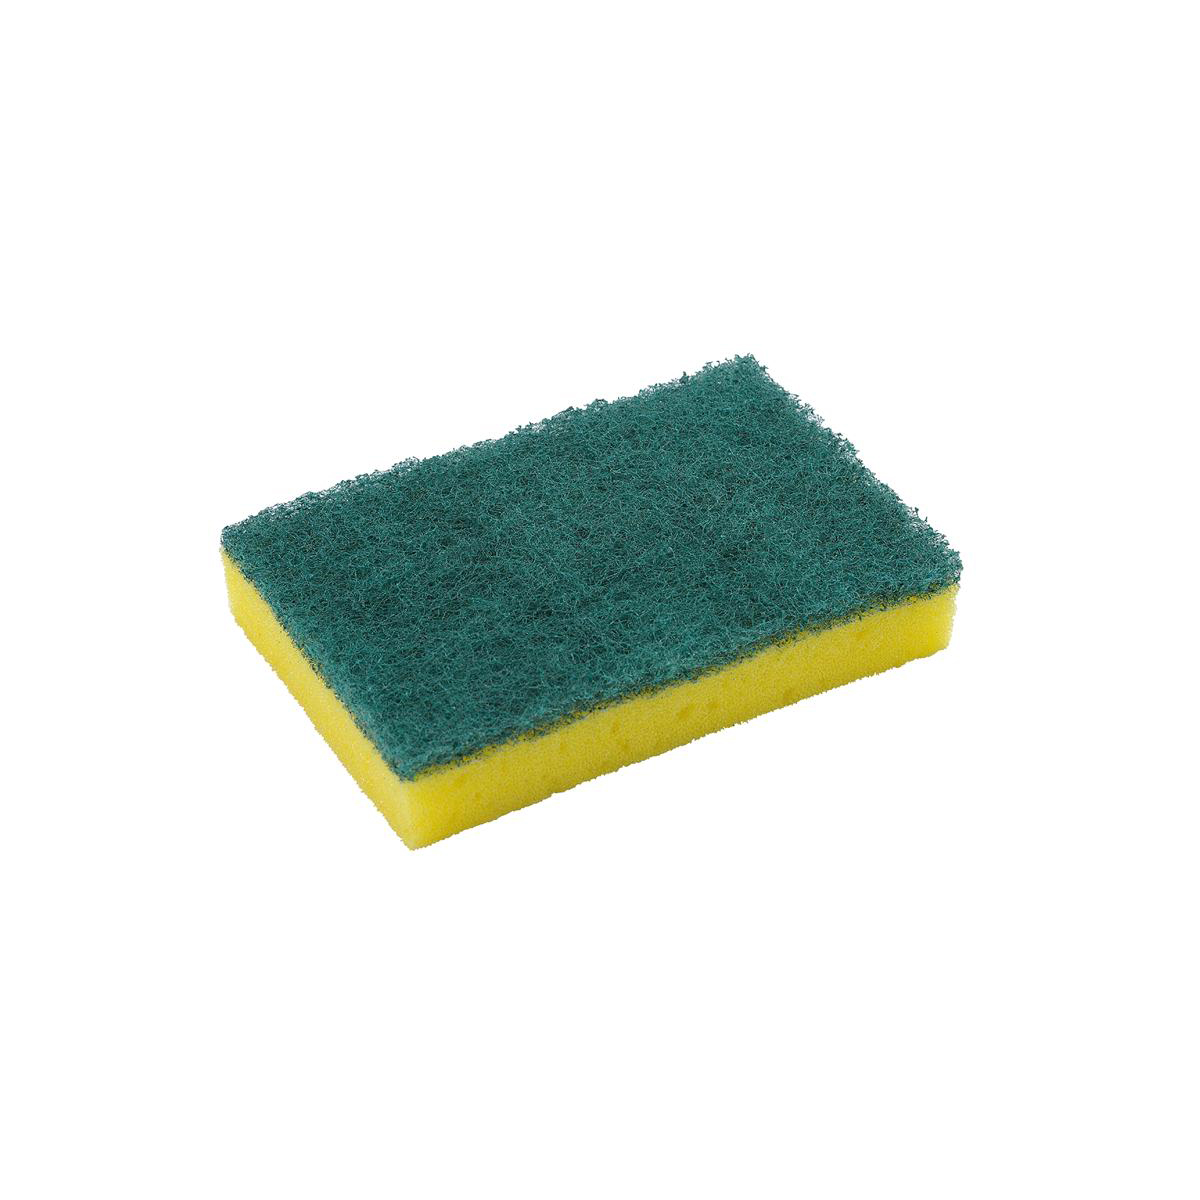 Sponges Washing Up Pad Sponge Scourer [Pack 10]